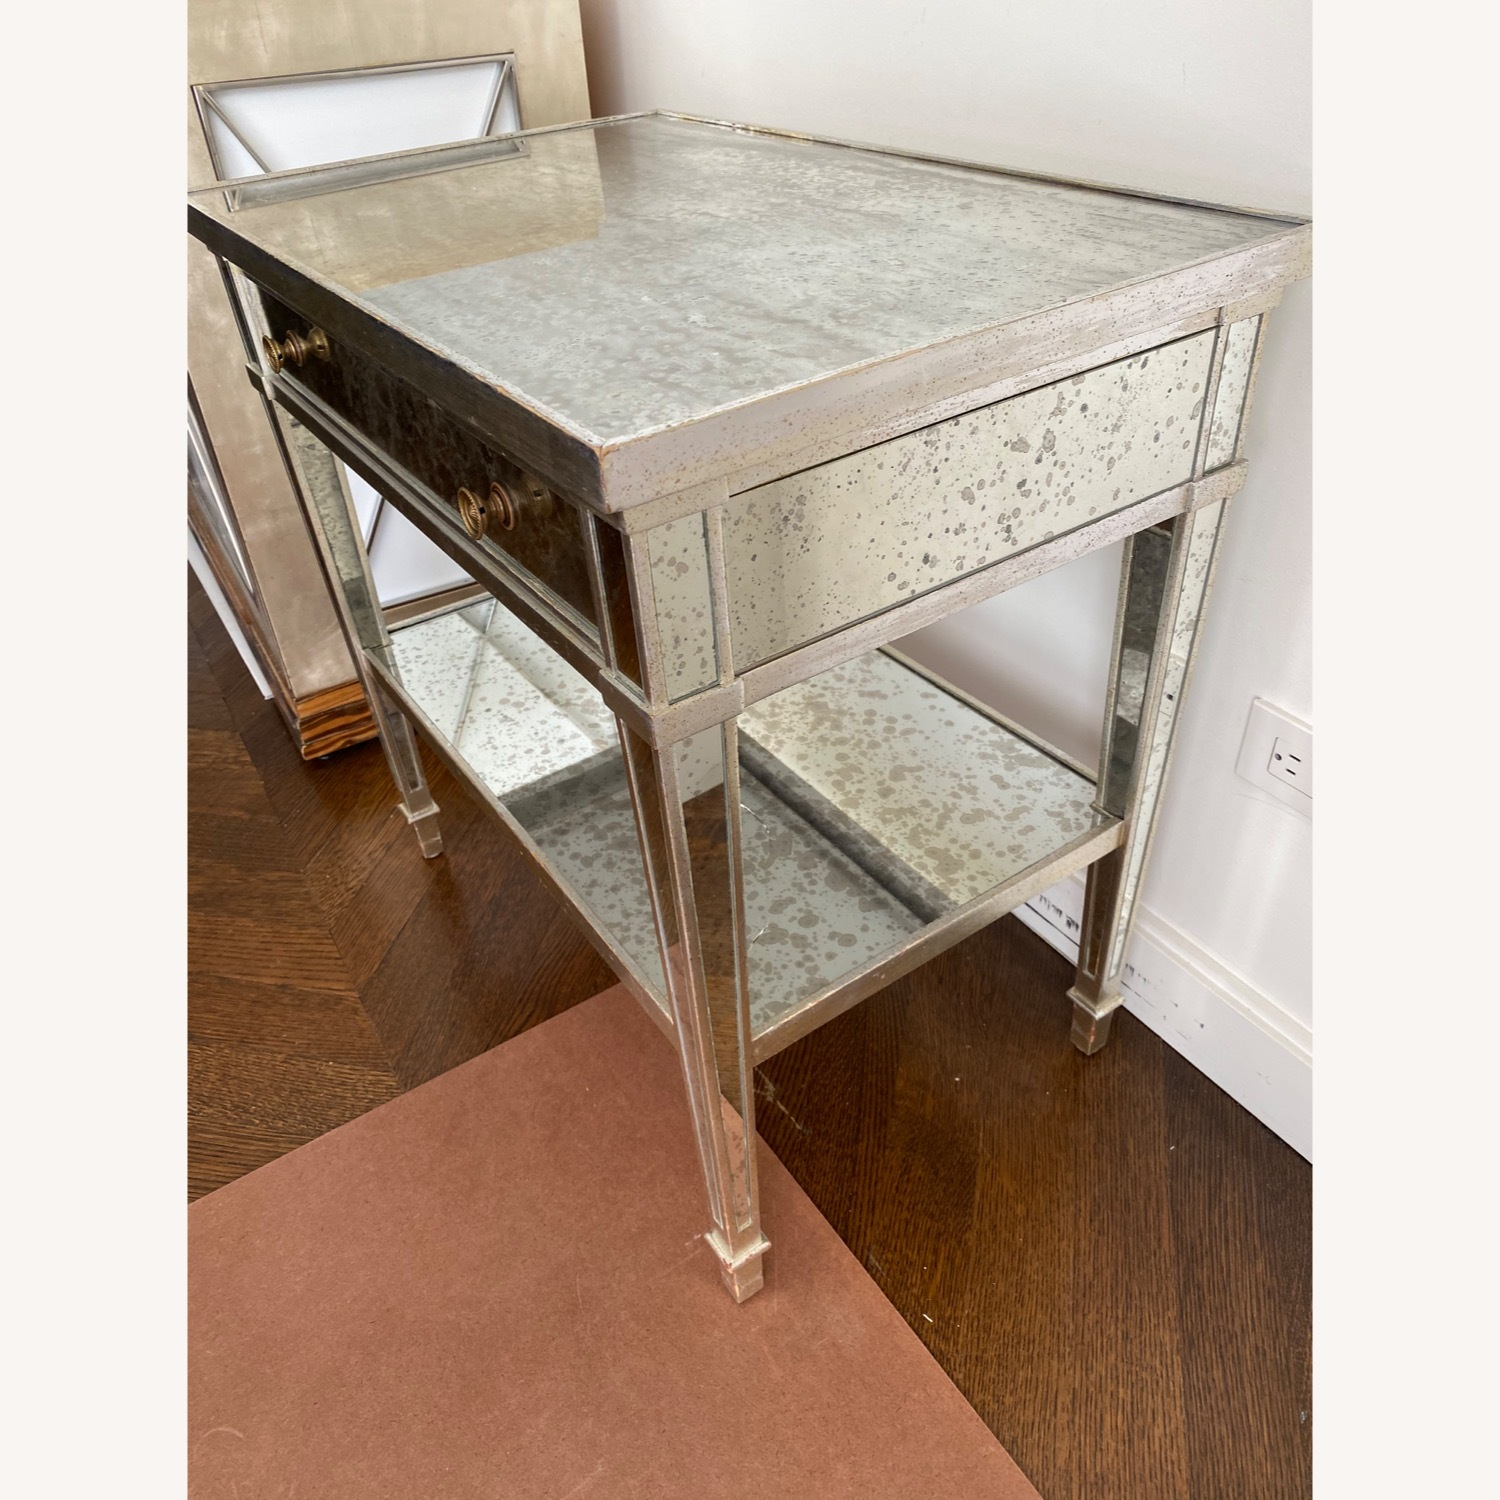 Two Julia Gray Antique Mirrored Nightstands - image-3